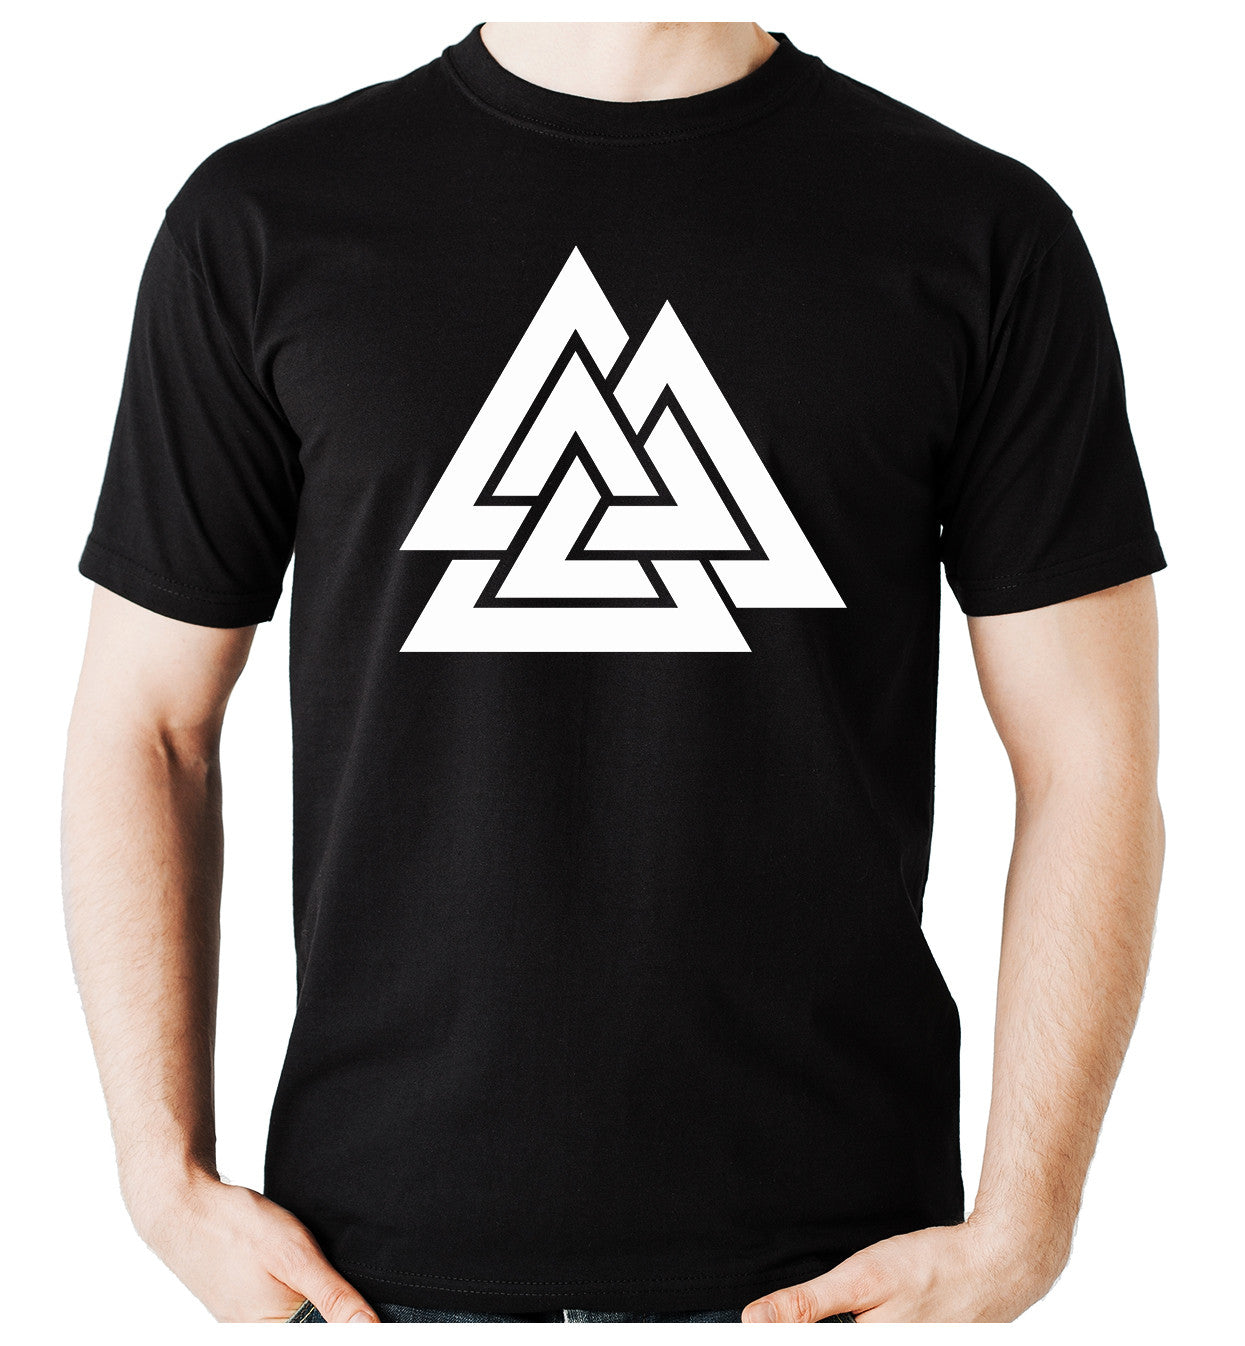 The Valknut Odin's Slain Warriors T-Shirt Alternative Clothing Old Norse Symbols Vikings